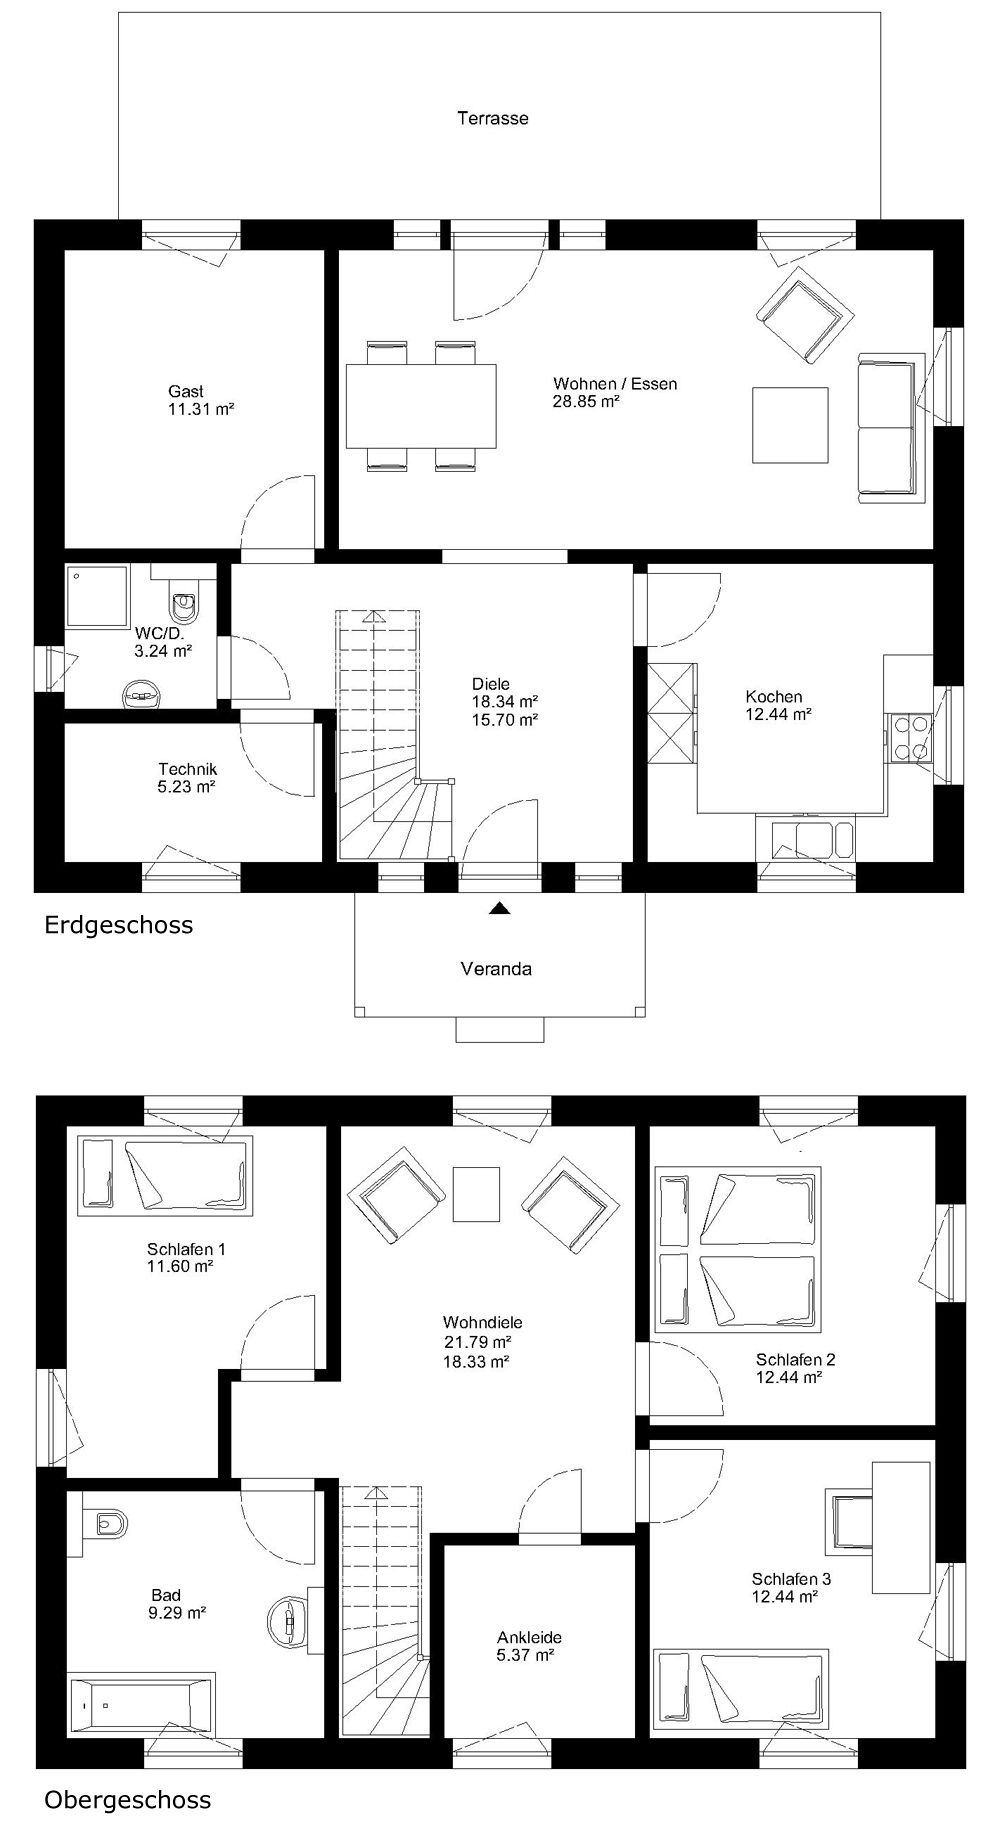 max haus 2 geschossig vermont floorplan pinterest haus schwedenhaus und grundriss. Black Bedroom Furniture Sets. Home Design Ideas